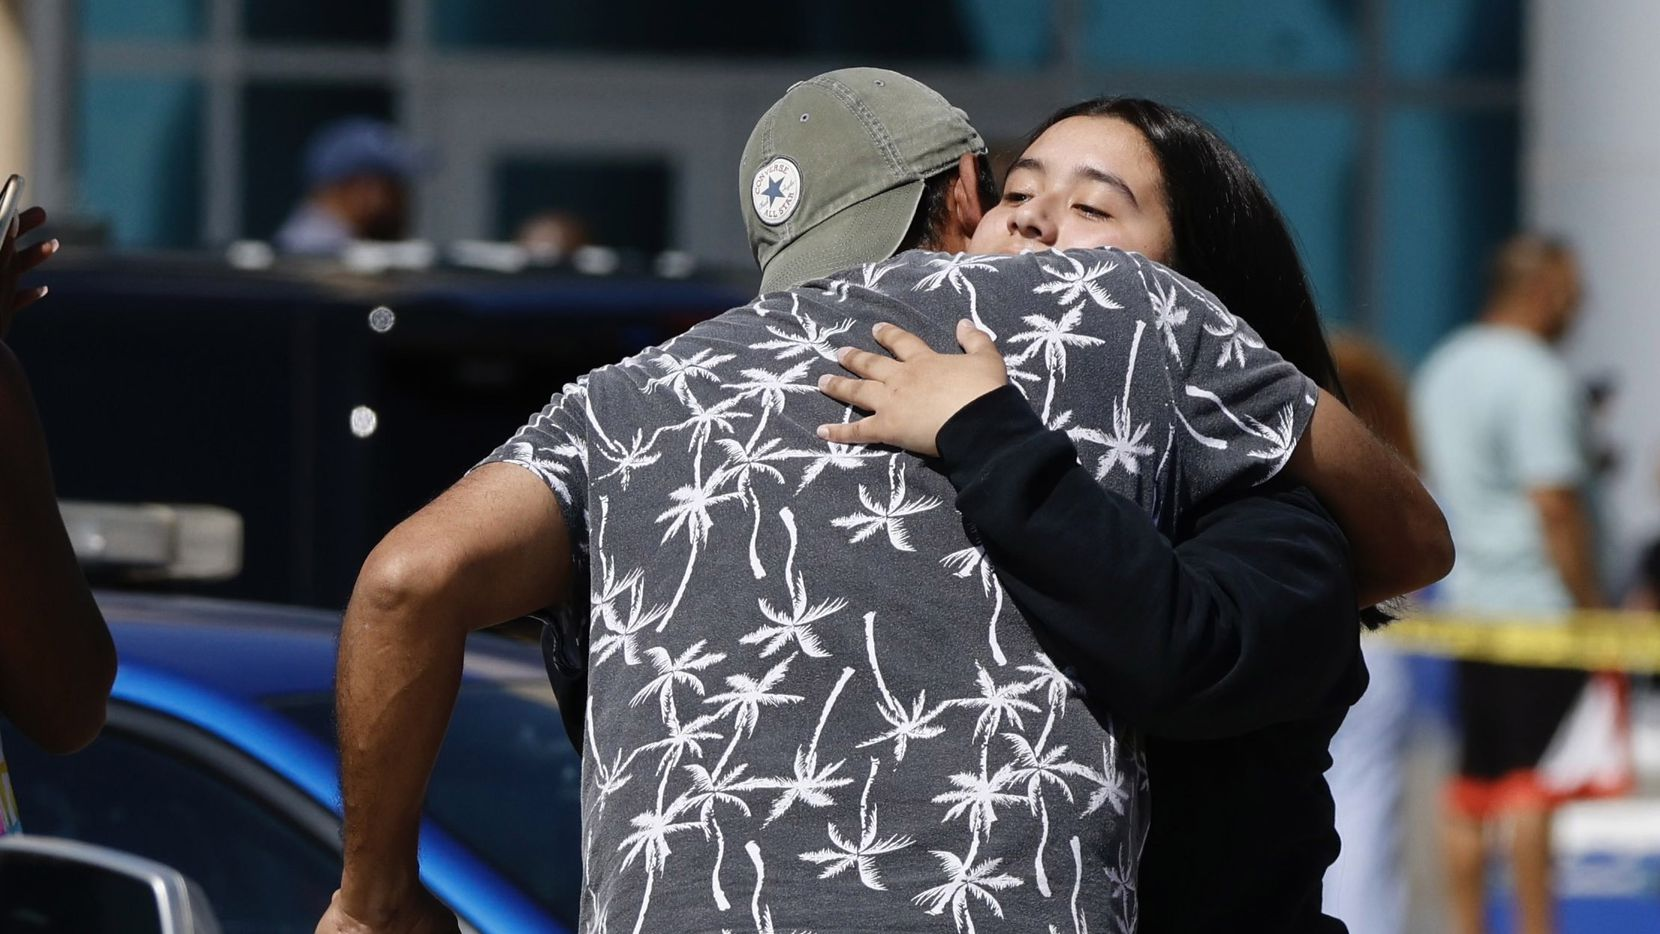 A Timberview High School student gets a hug outside of the Mansfield ISD Center for The Performing Arts on Wednesday, October 6, 2021 in Mansfield, TX.Four people were injured in a shooting at Timberview High School in Arlington on Wednesday morning, and authorities said the suspect remained at large.  (Elias Valverde II/The Dallas Morning News)